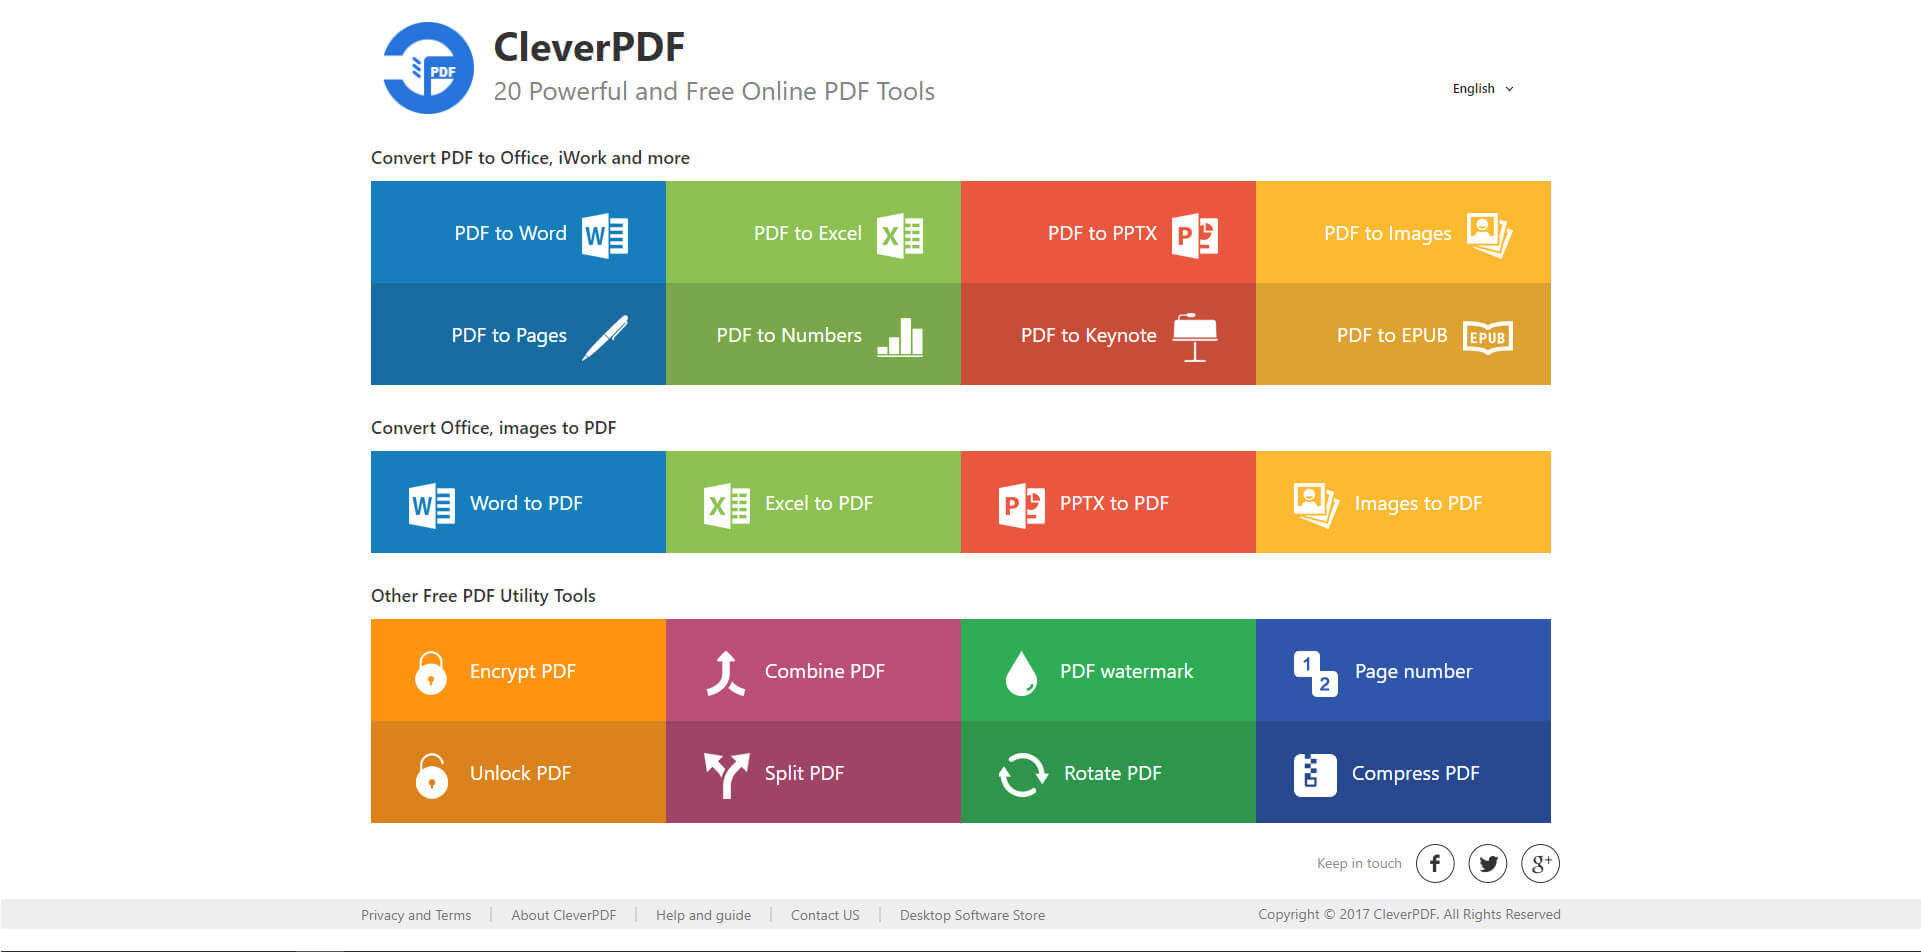 CleverPDF homepage - 20 Powerful and Free Online PDF Tools